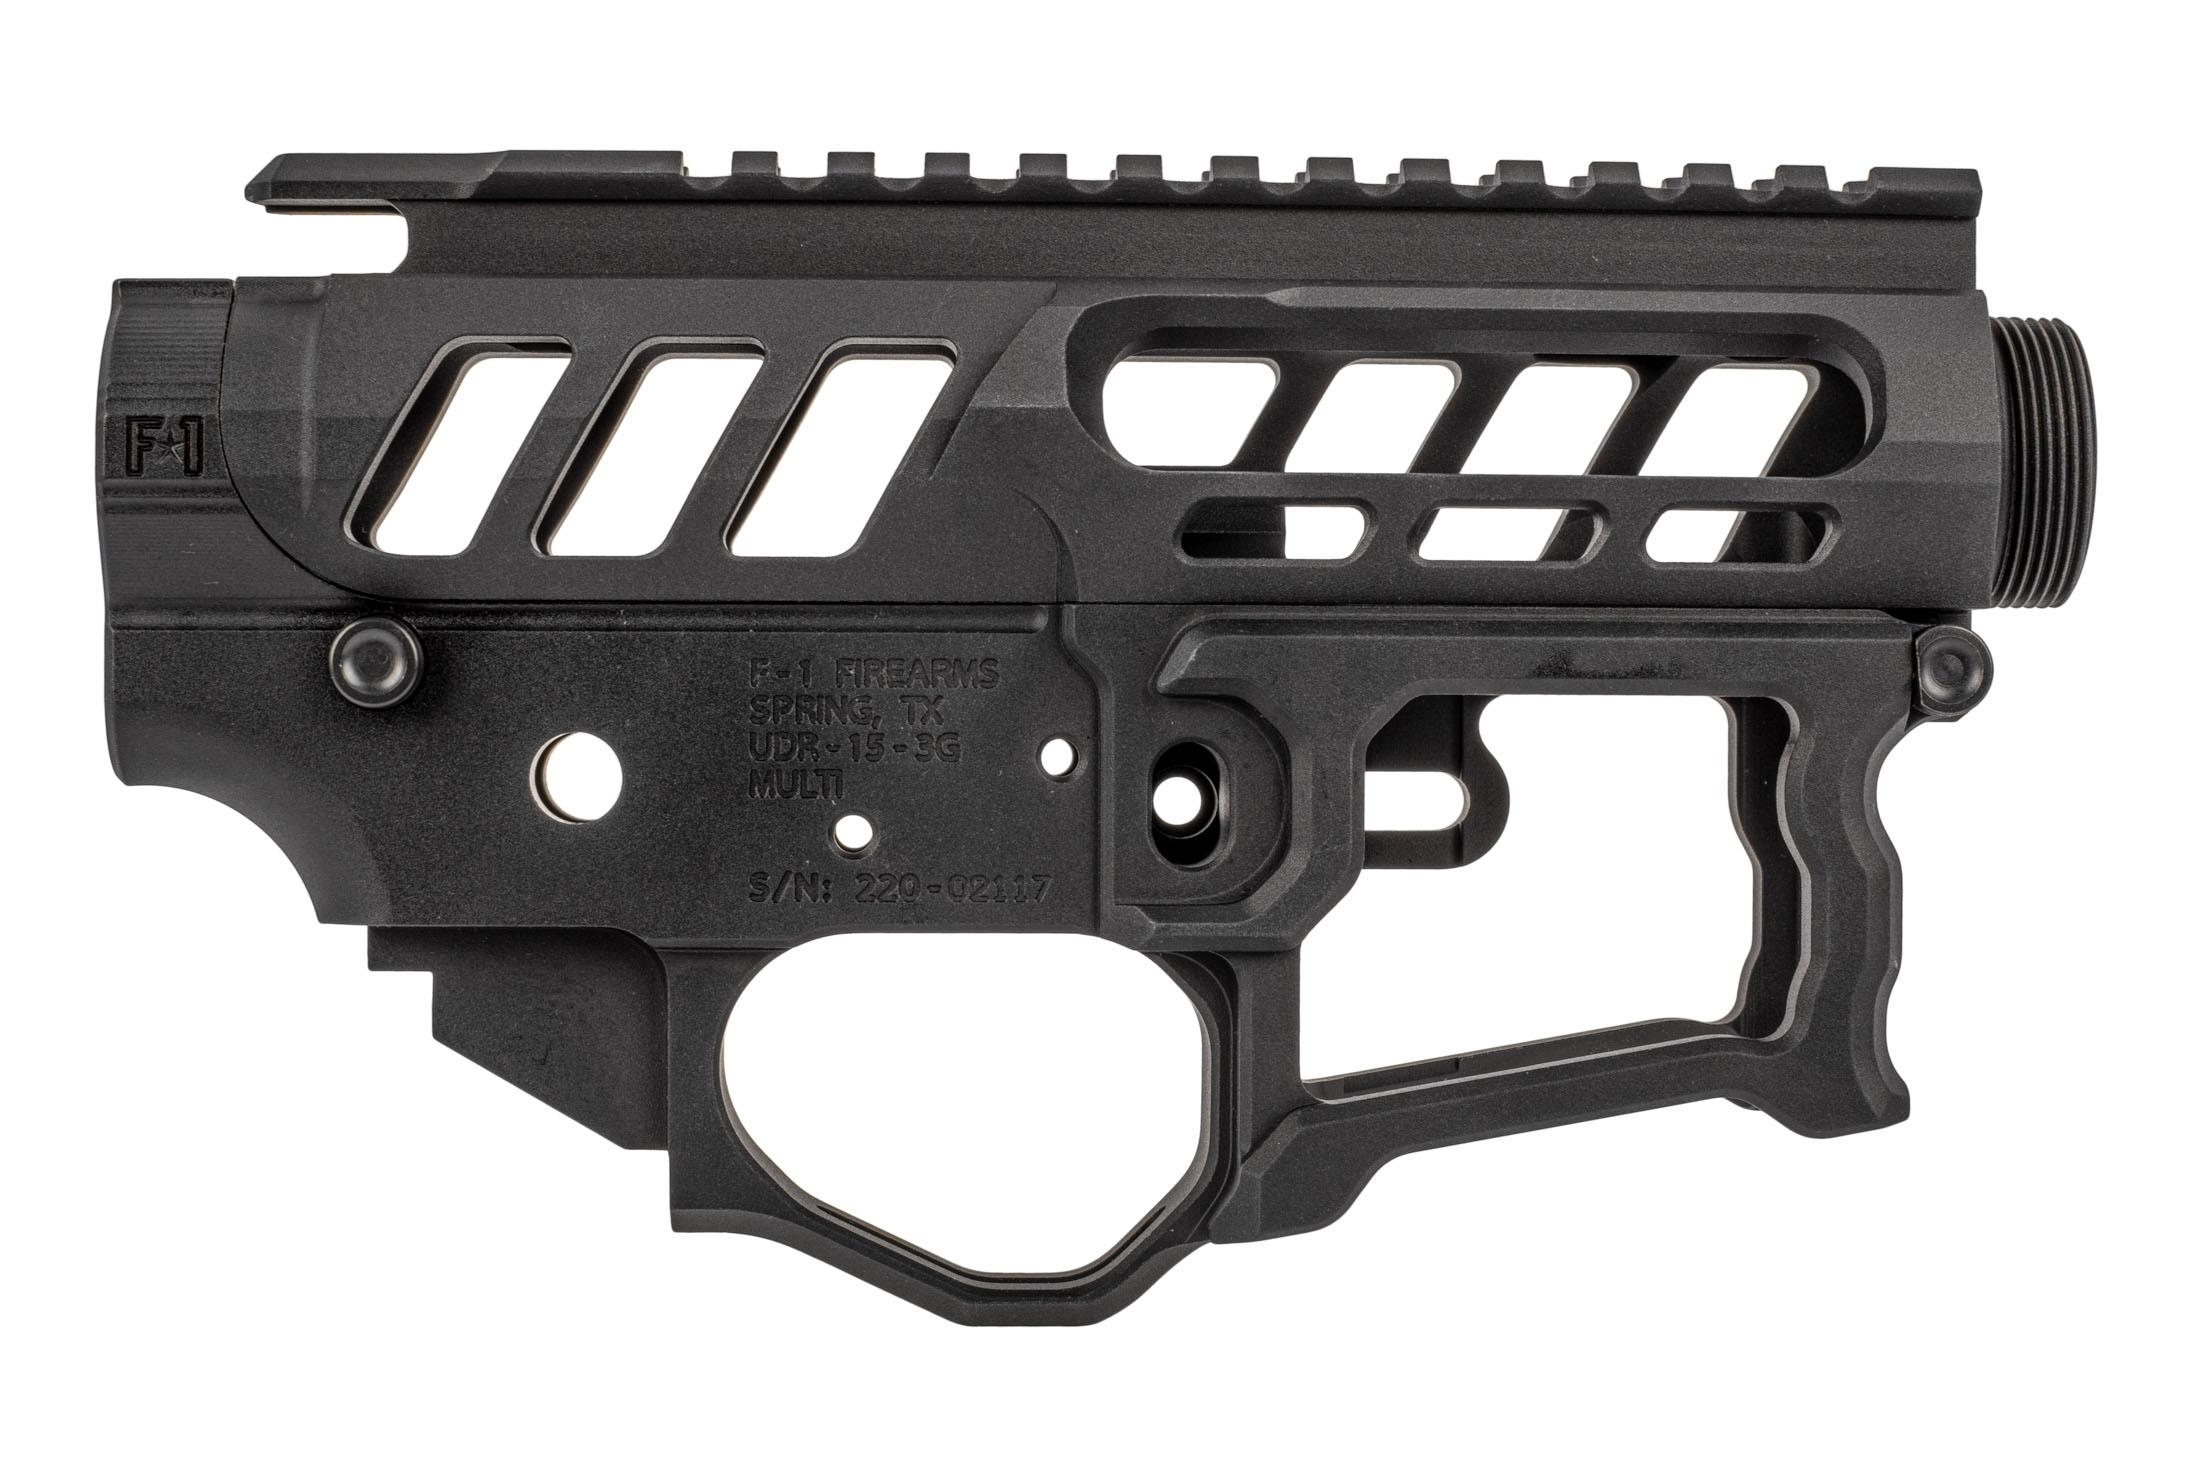 F-1 Firearms UDR-15 3G Style 2 billet AR15 receiver set features a hardcoat anodized finish